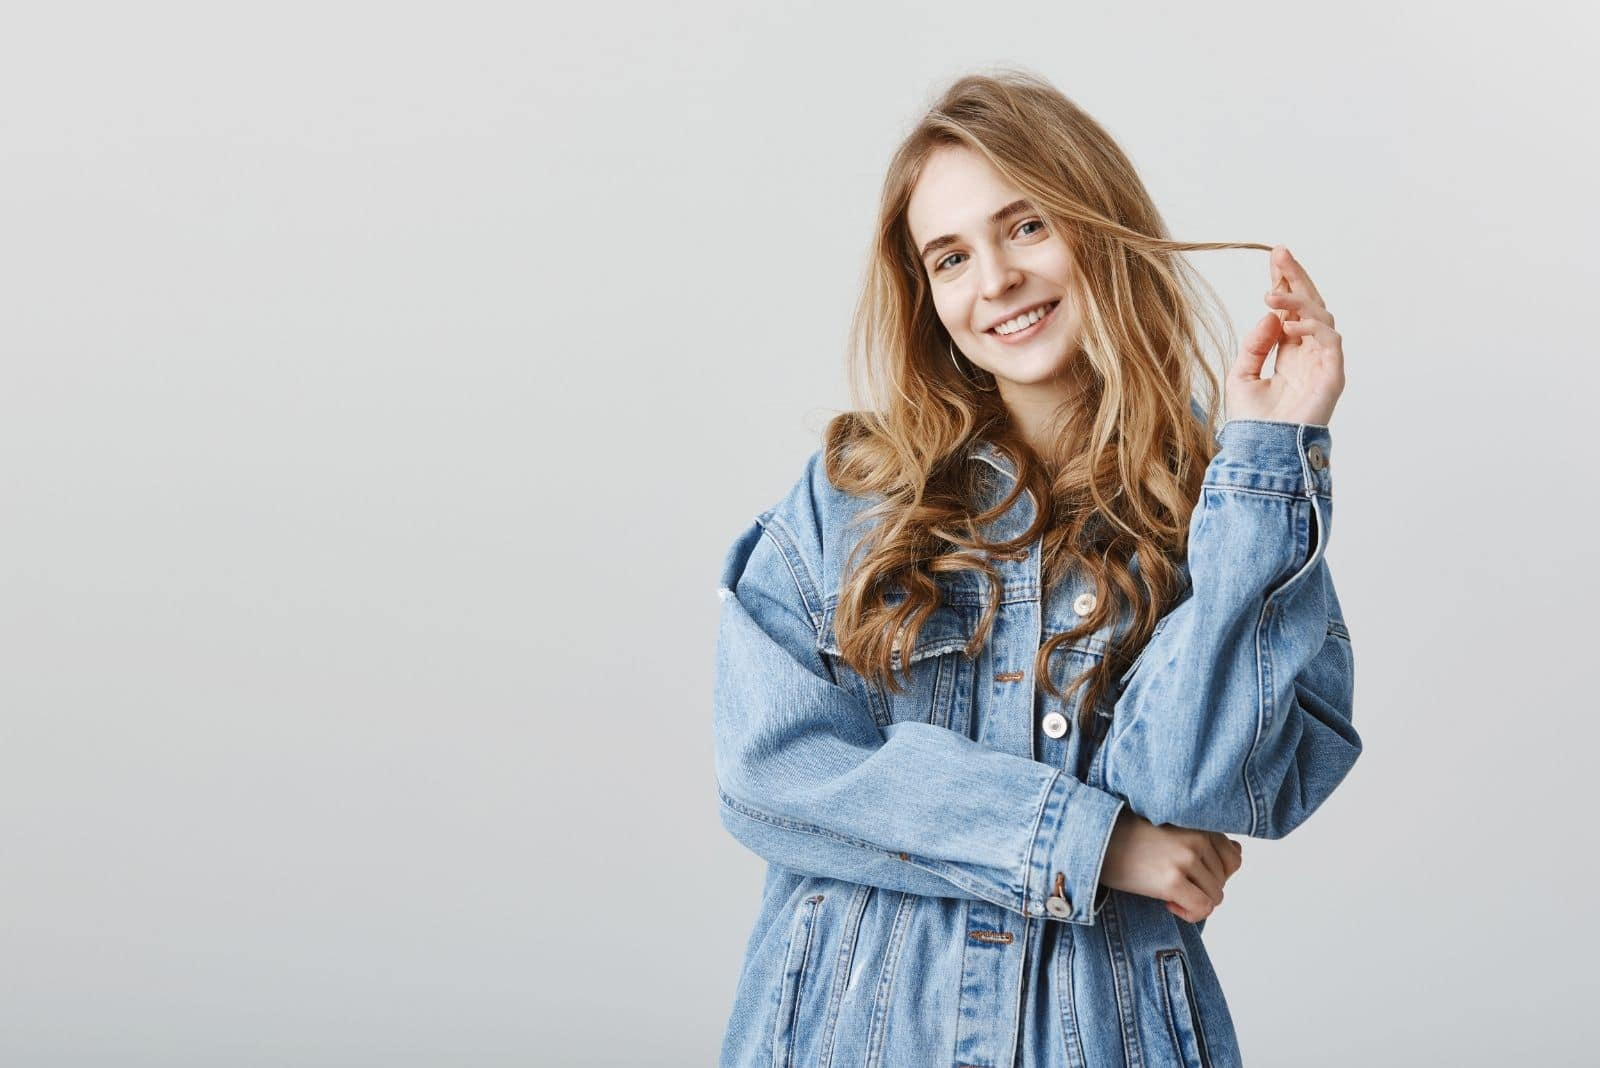 beautiful caucasian woman standing wearing oversized denim jacket and playing with her hair and smiling